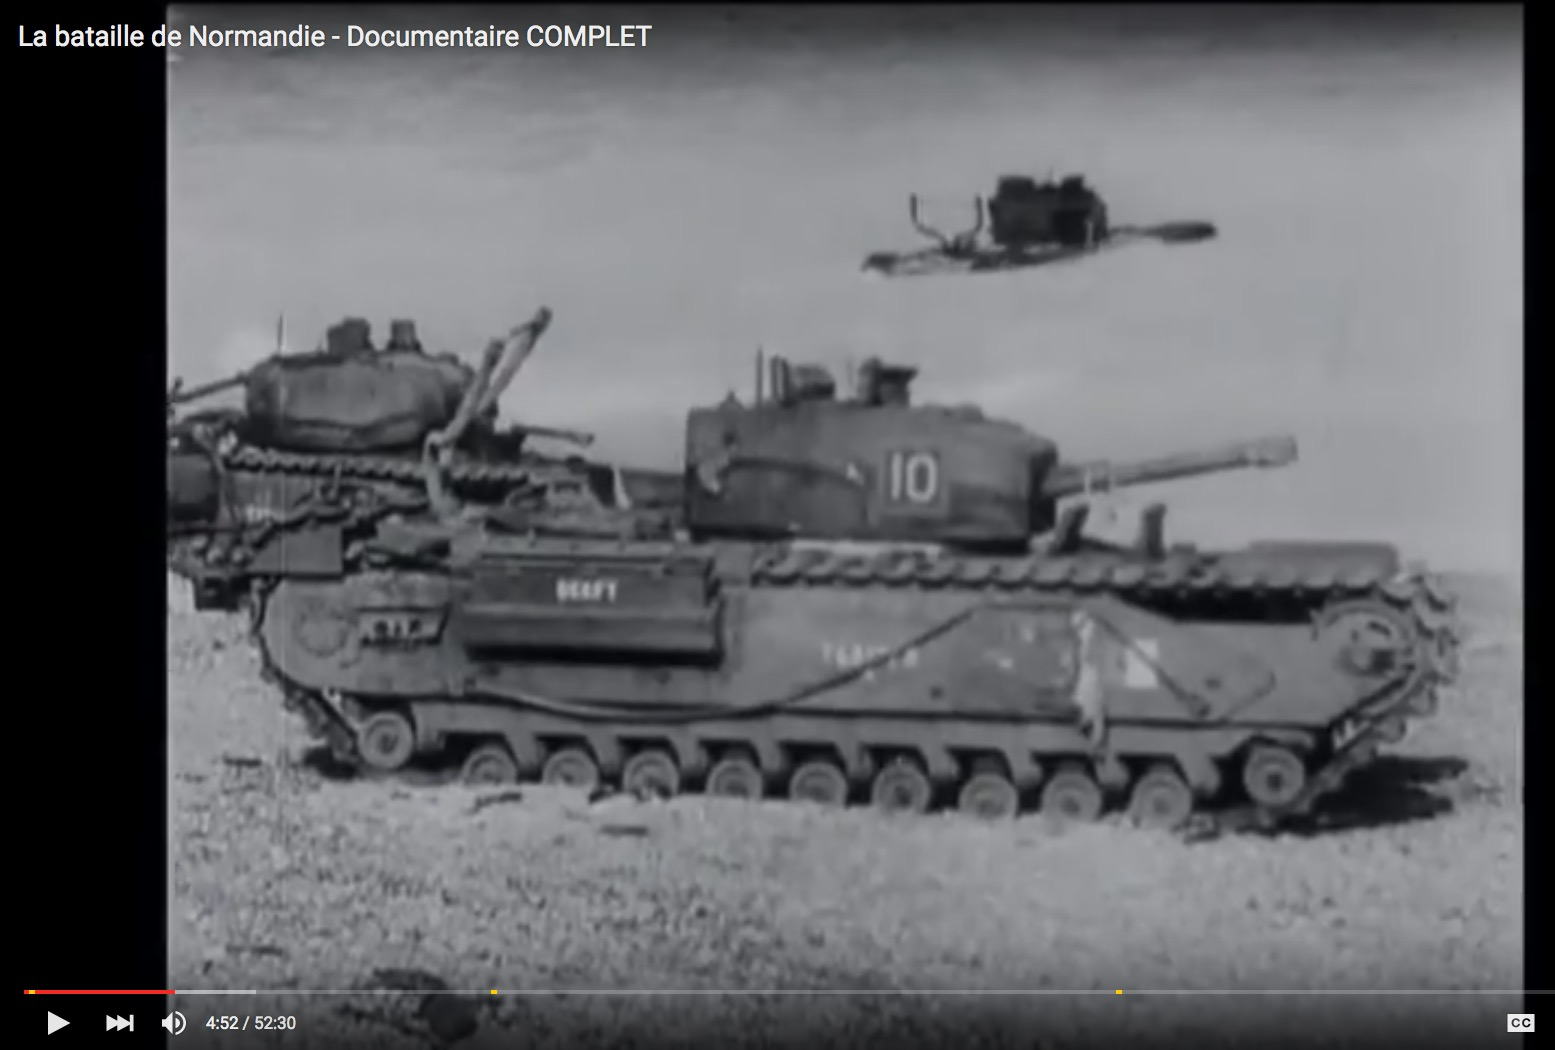 Amphibious Armored Vehicle 10 on Omaha Beach, June 6, 1944, still from D-Day movie footage